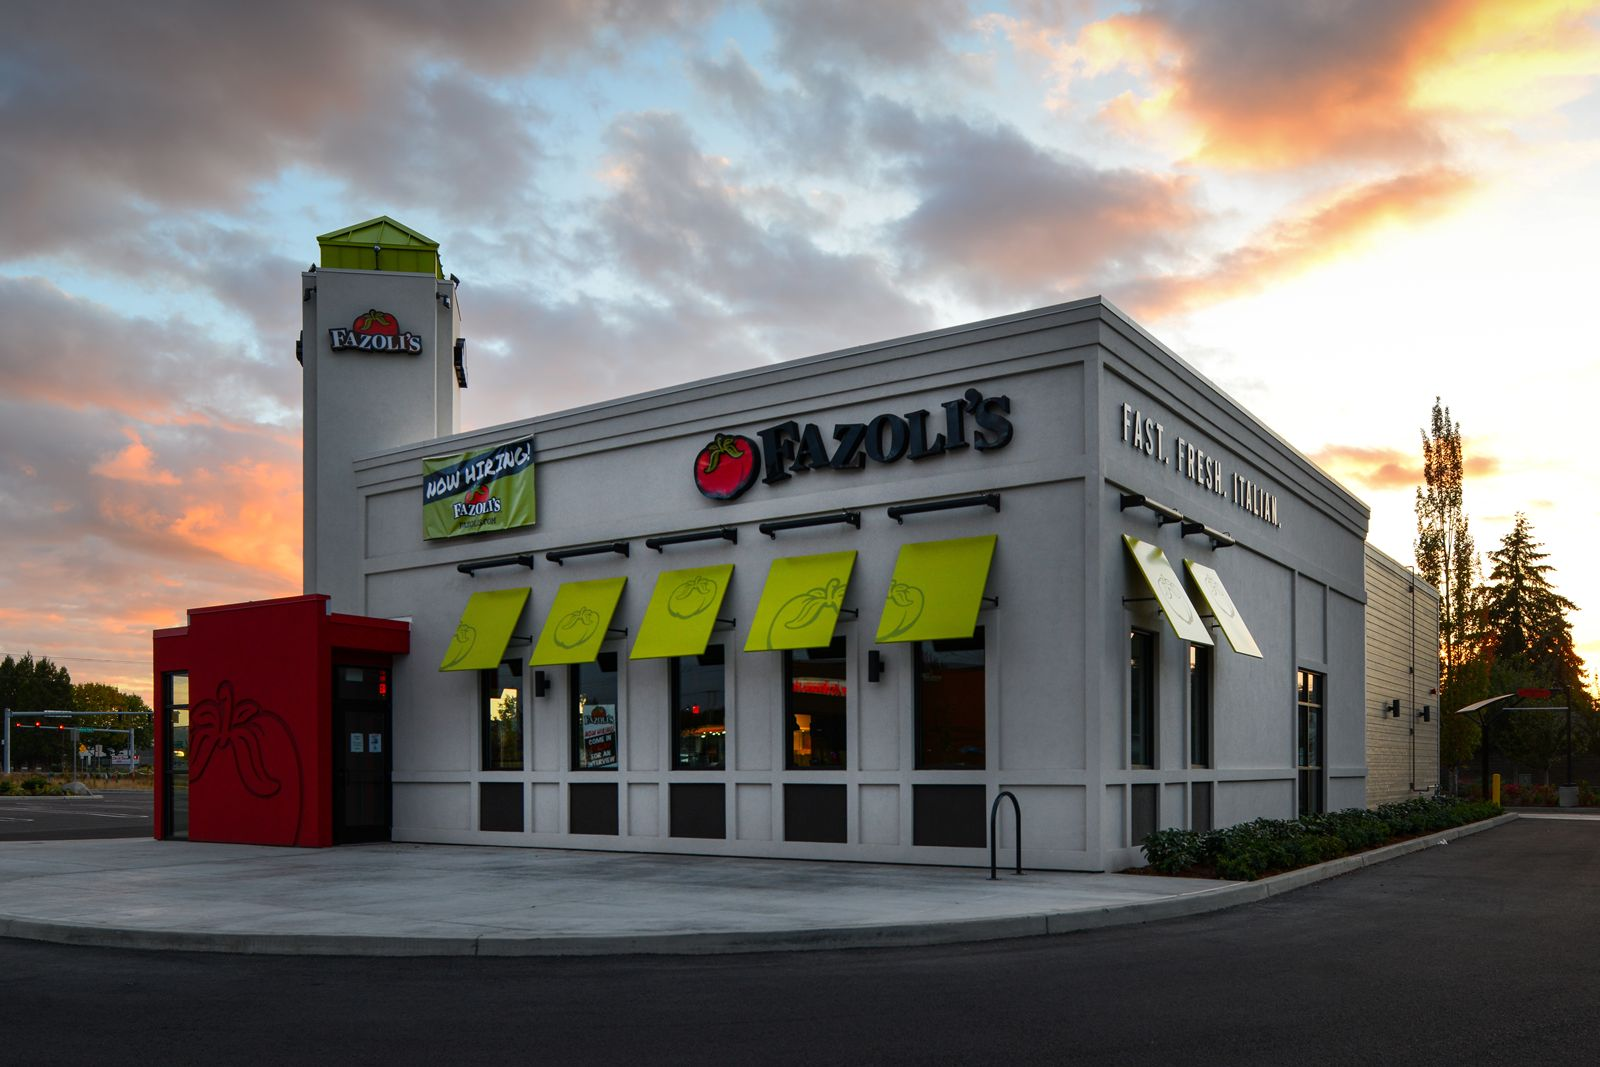 Fazoli's New Restaurant Design Paves the Way for the Future